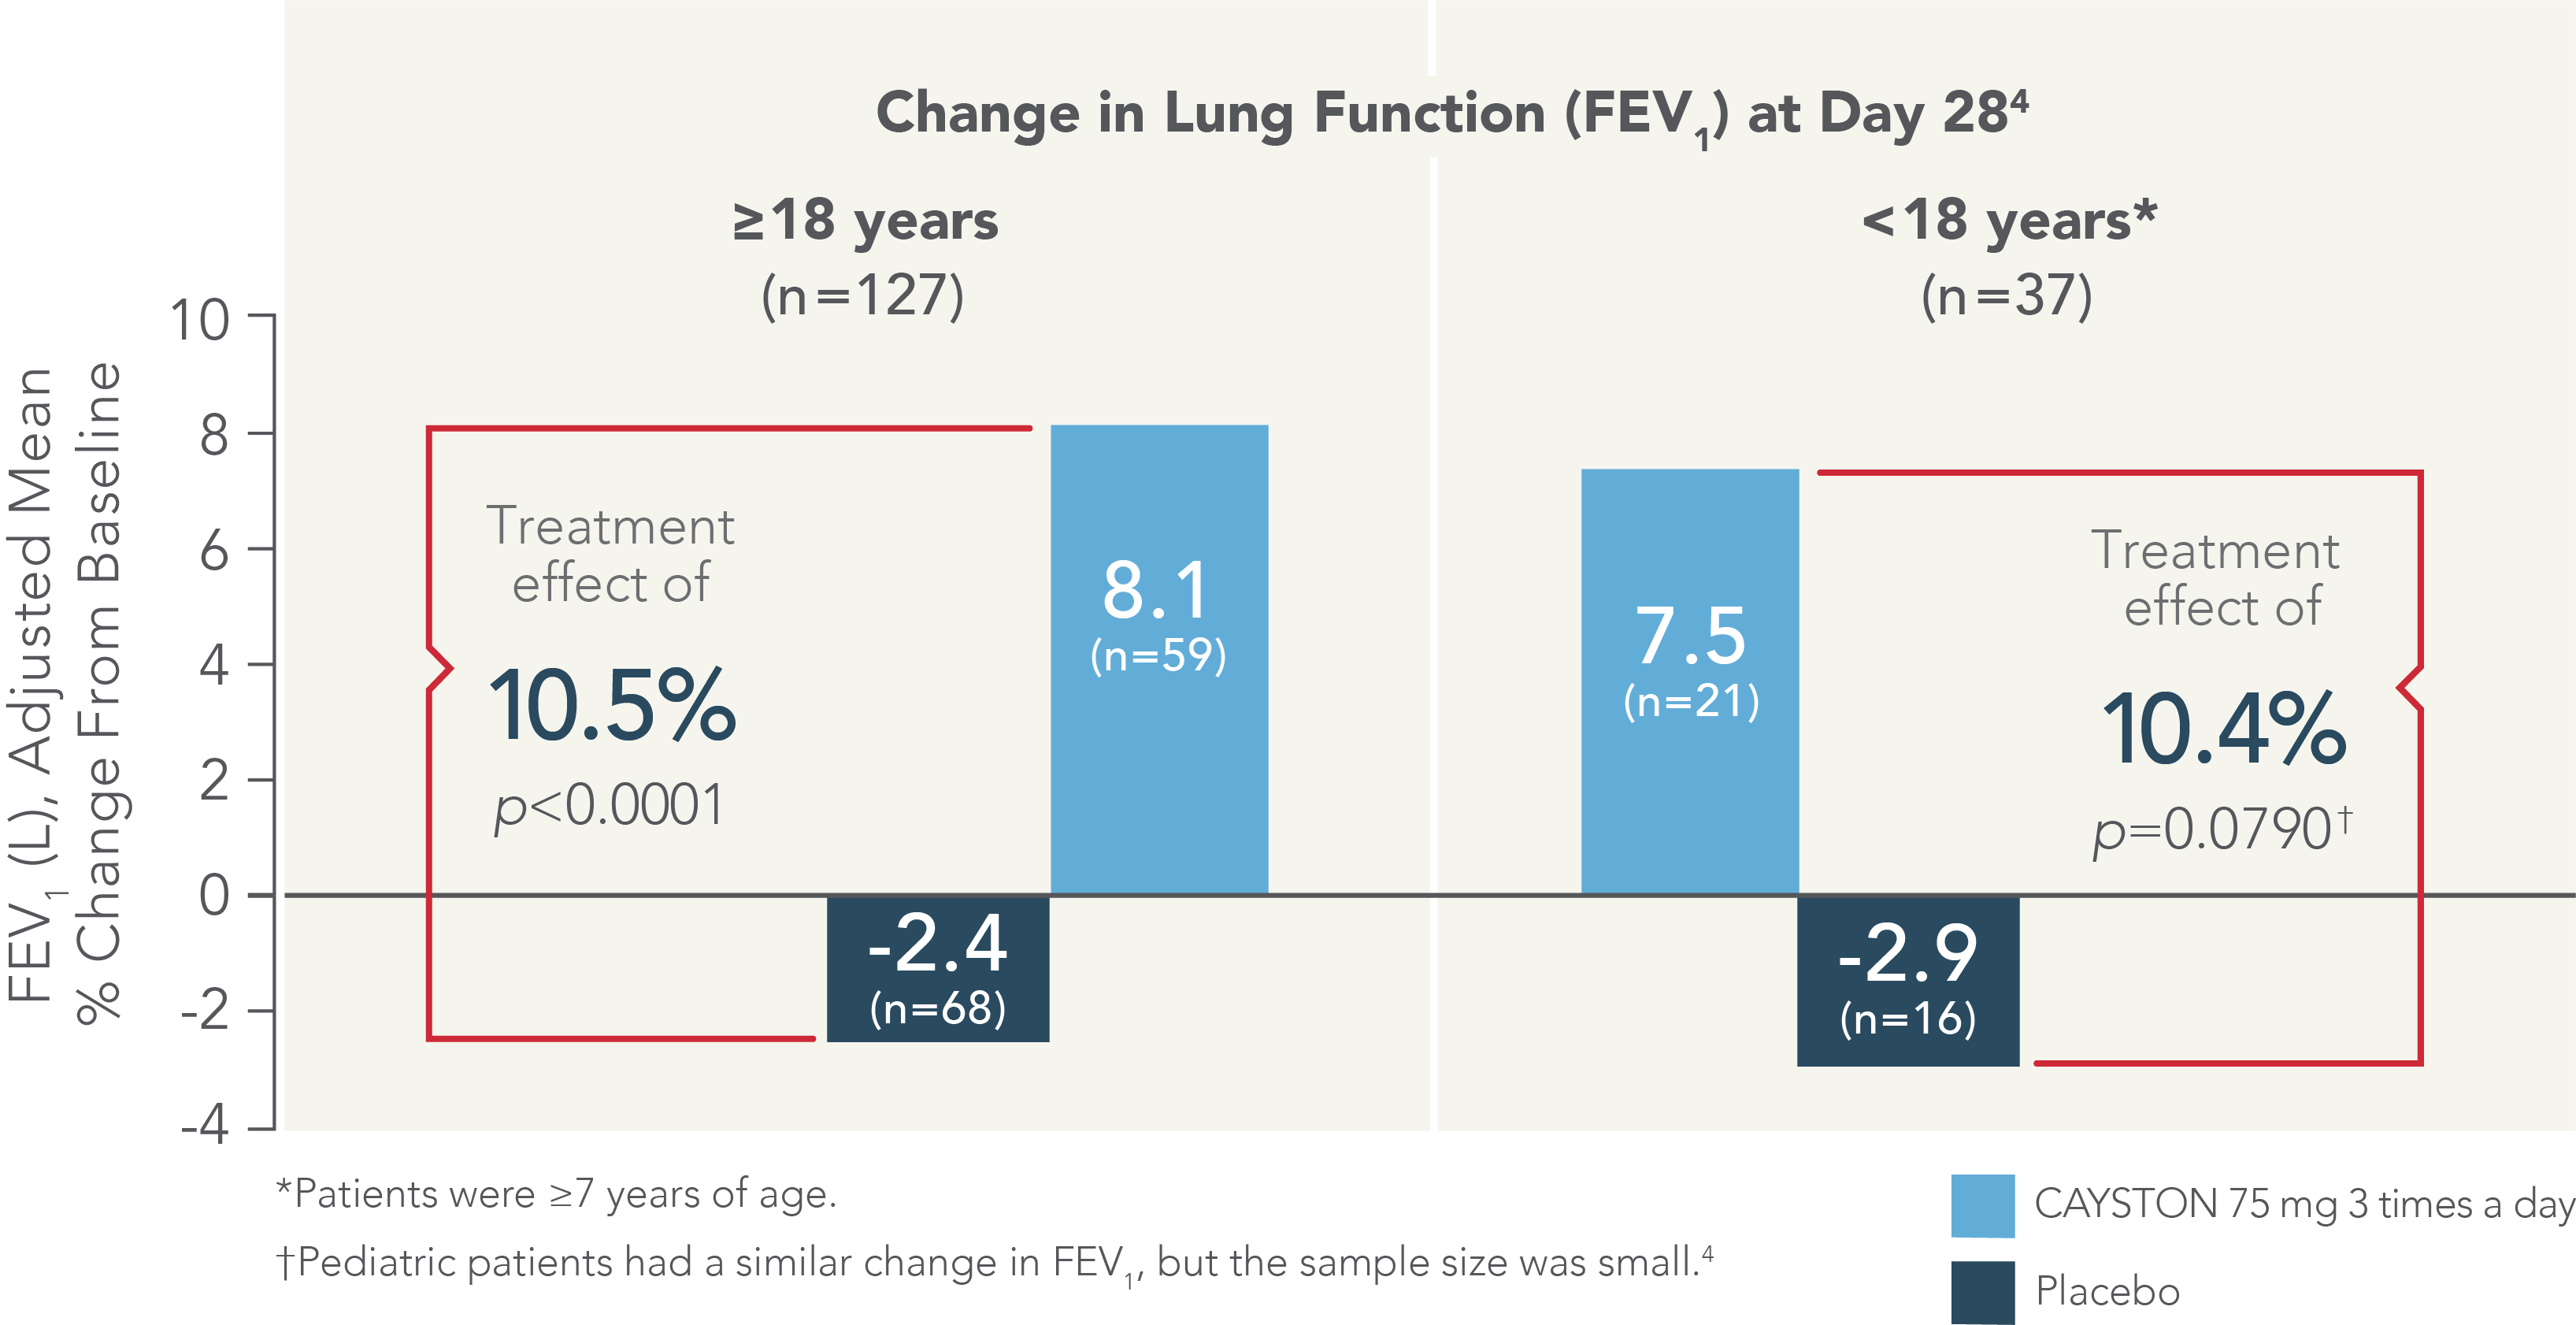 CAYSTON AIR-CF1: Adult/Pediatric lung function chart